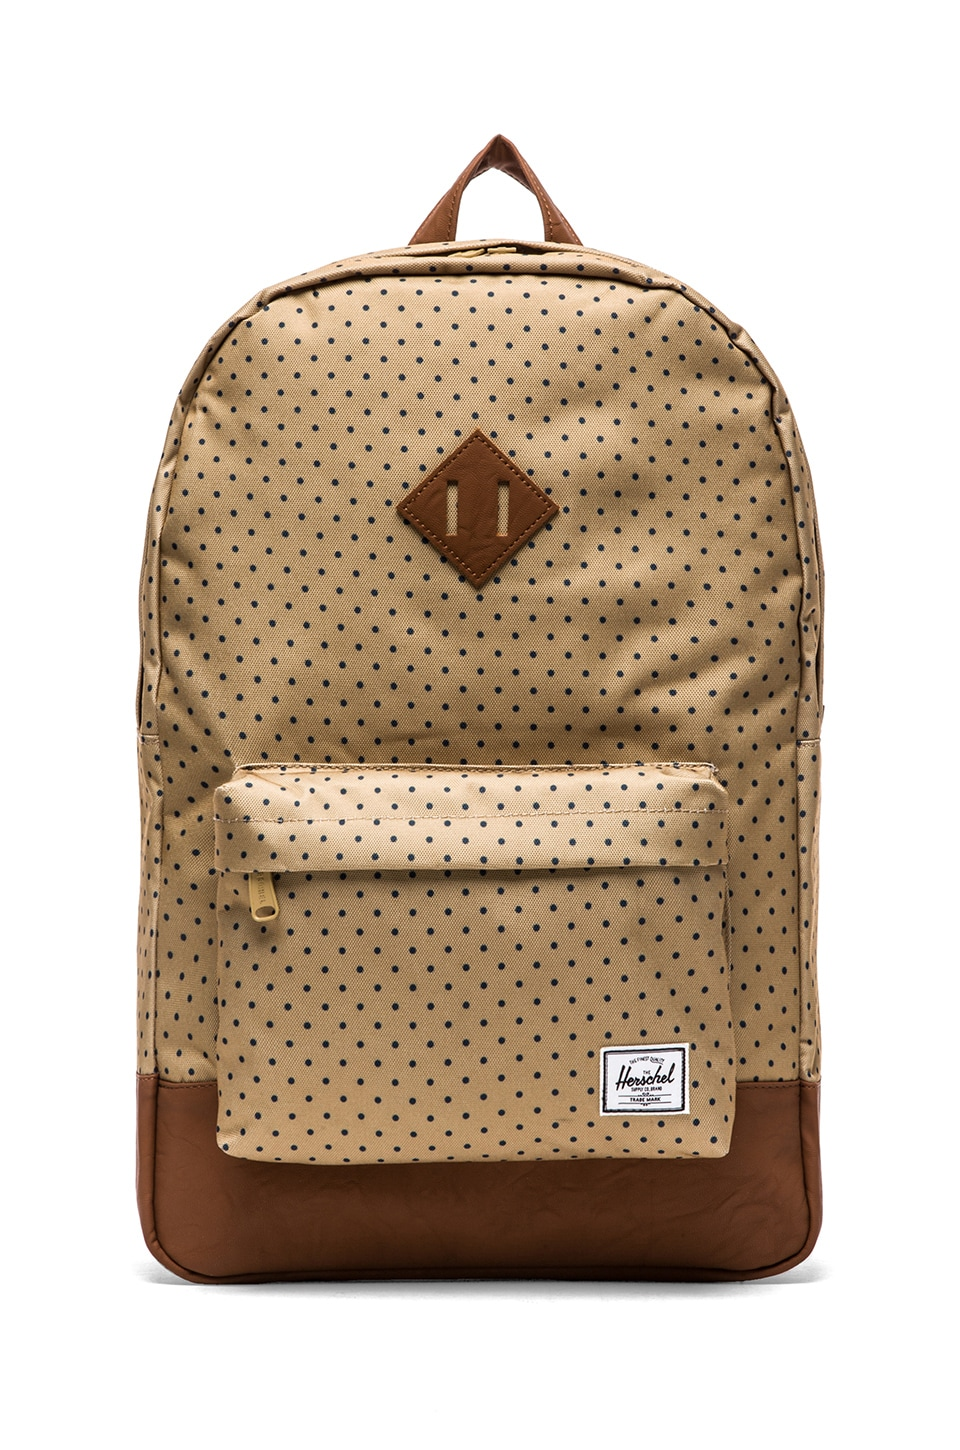 Herschel Supply Co. Heritage Backpack in Khaki Polka Dot